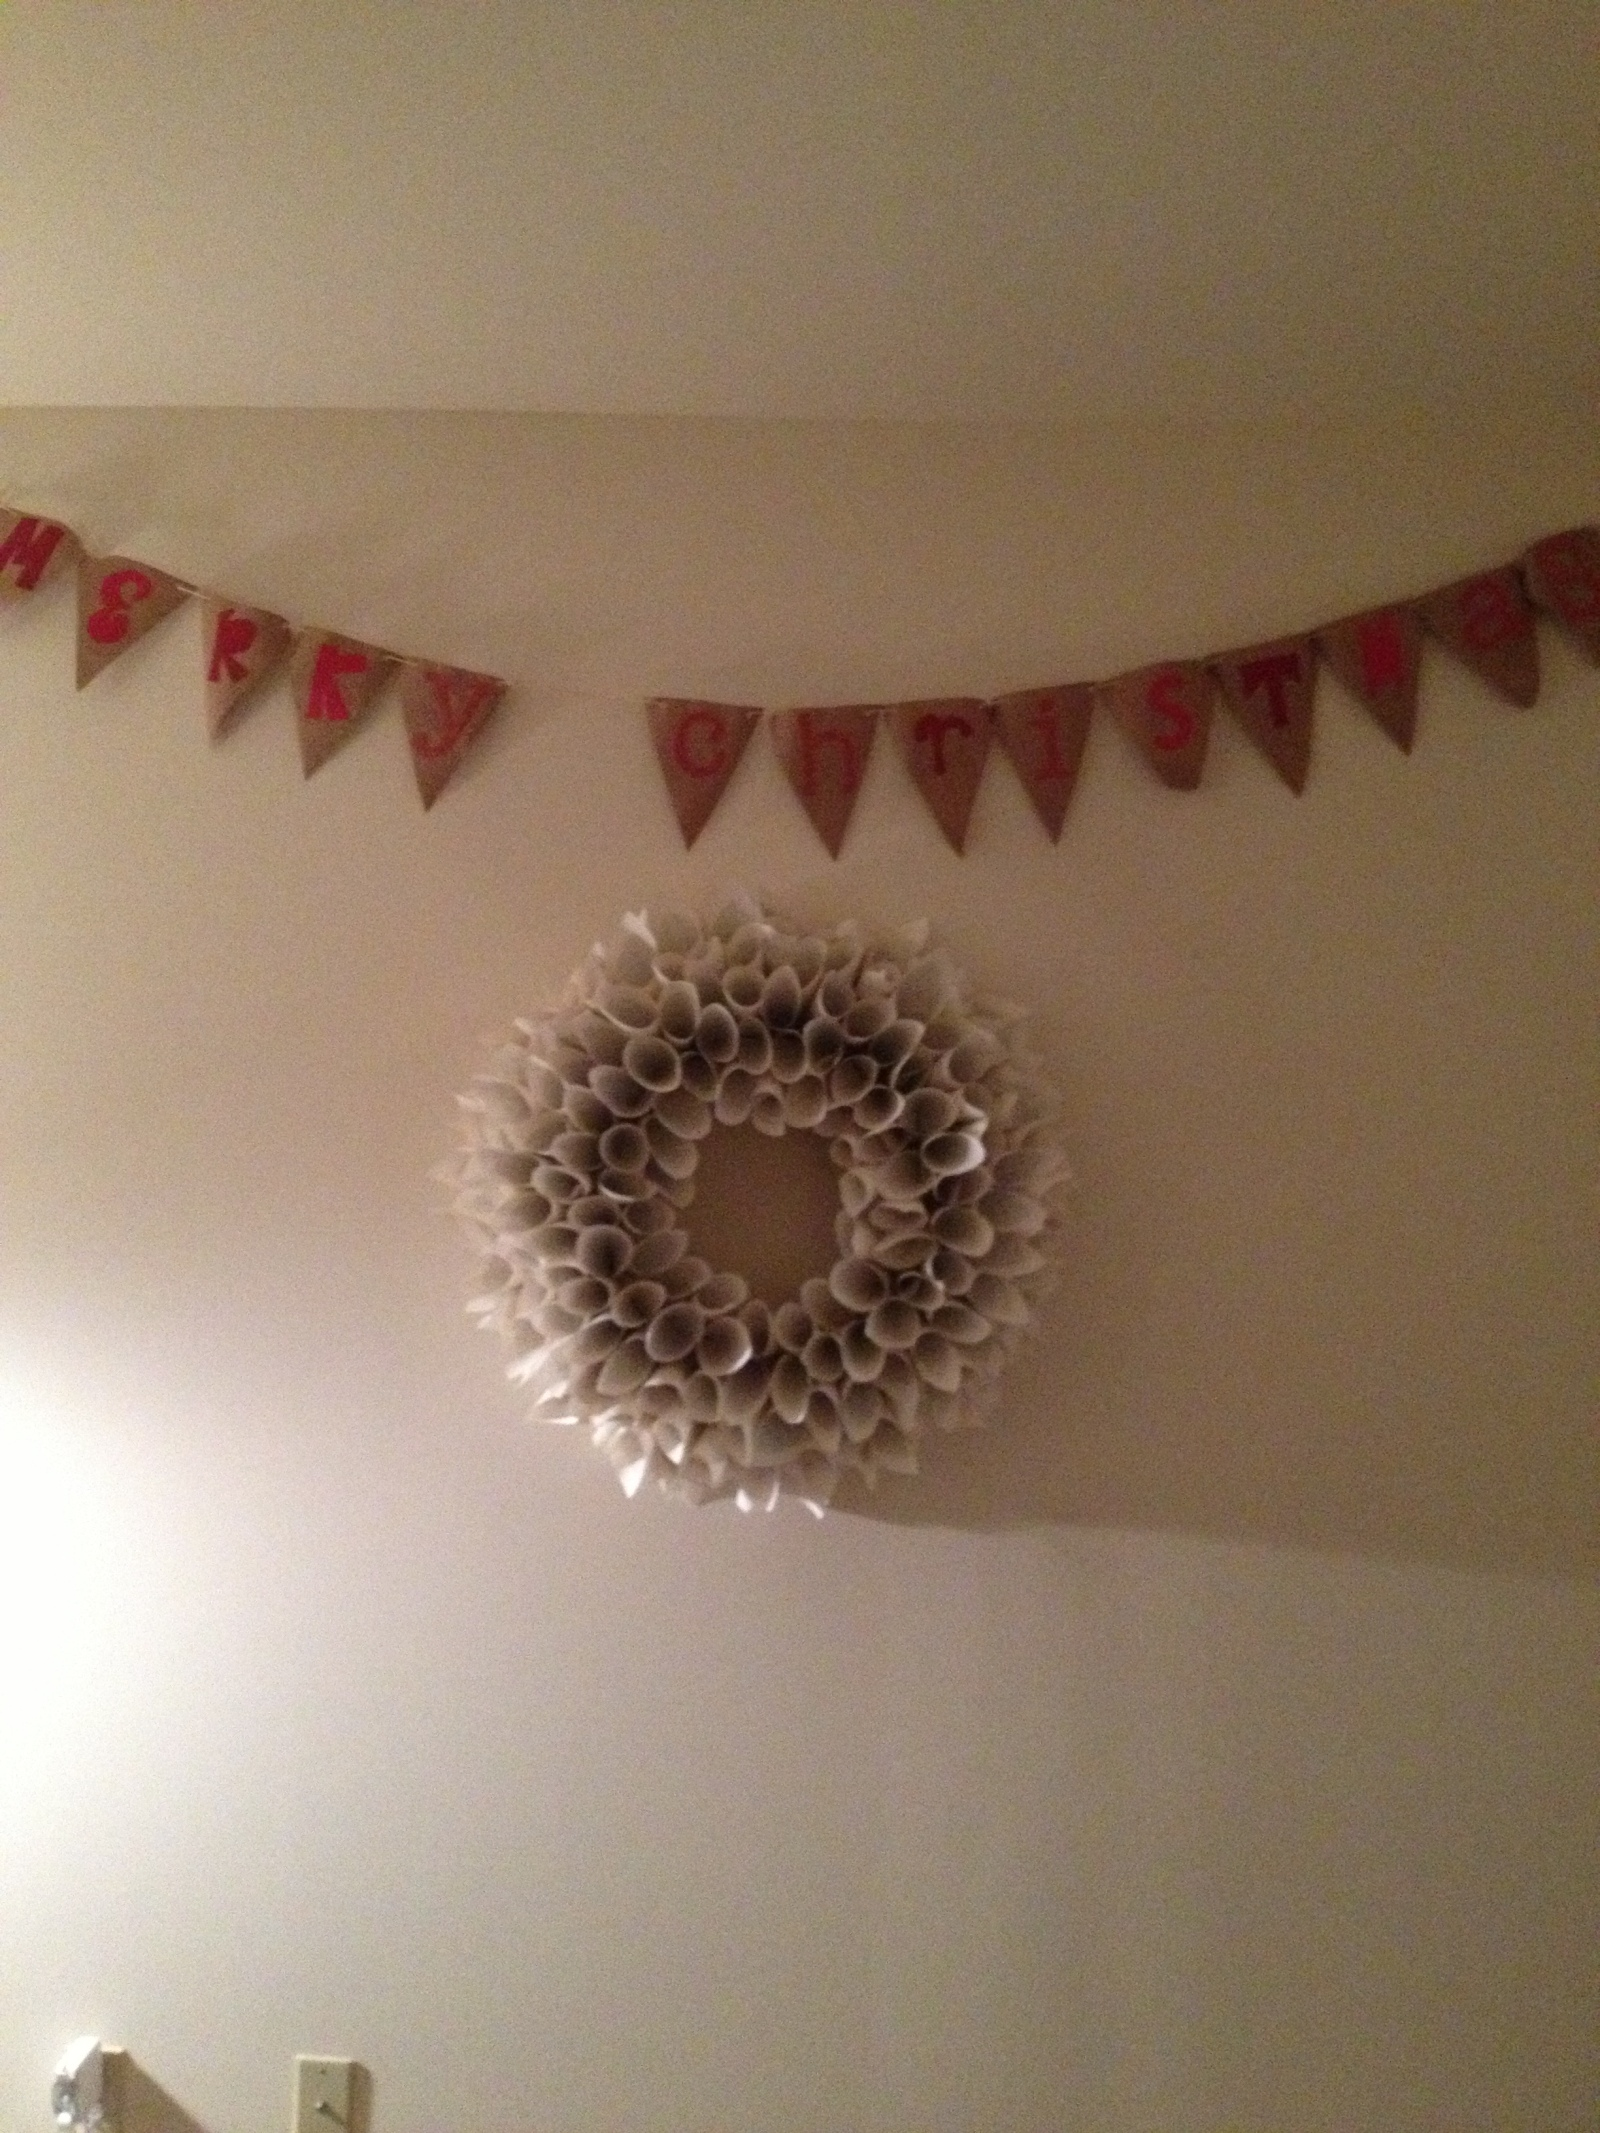 The wreath and banner on our main living room wall